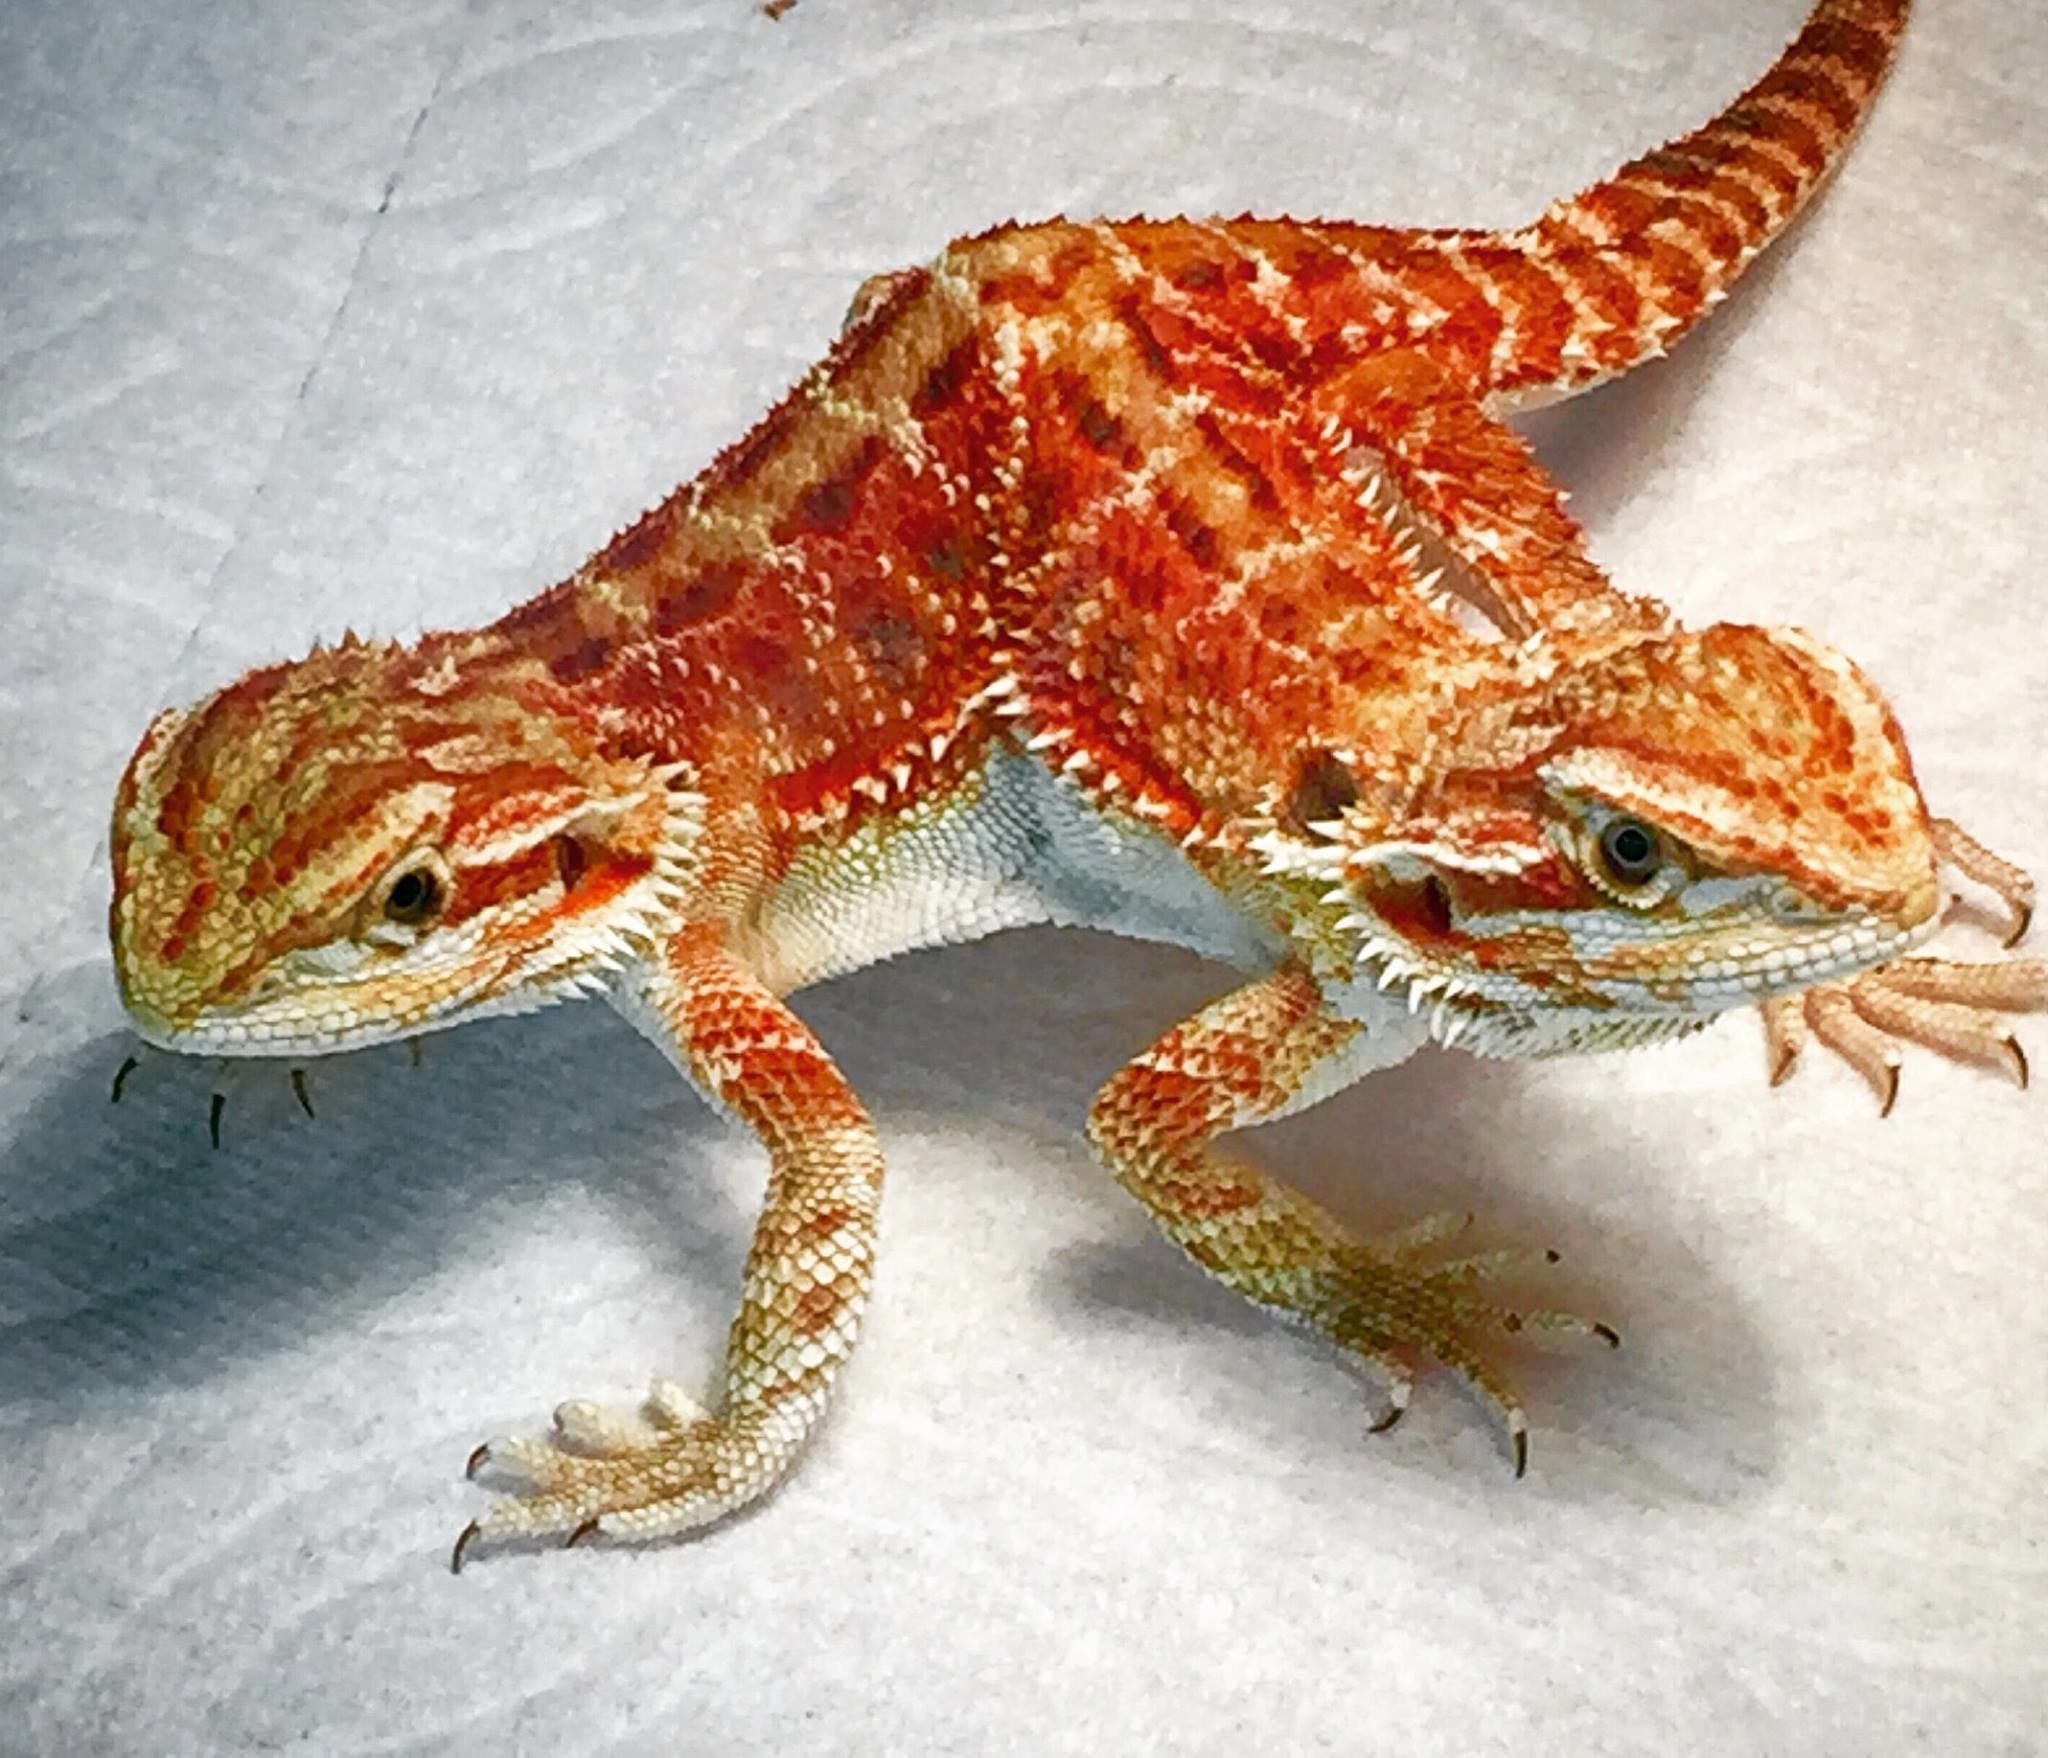 Check Out The Most Beautiful 2-Headed Bearded Dragon We've ...